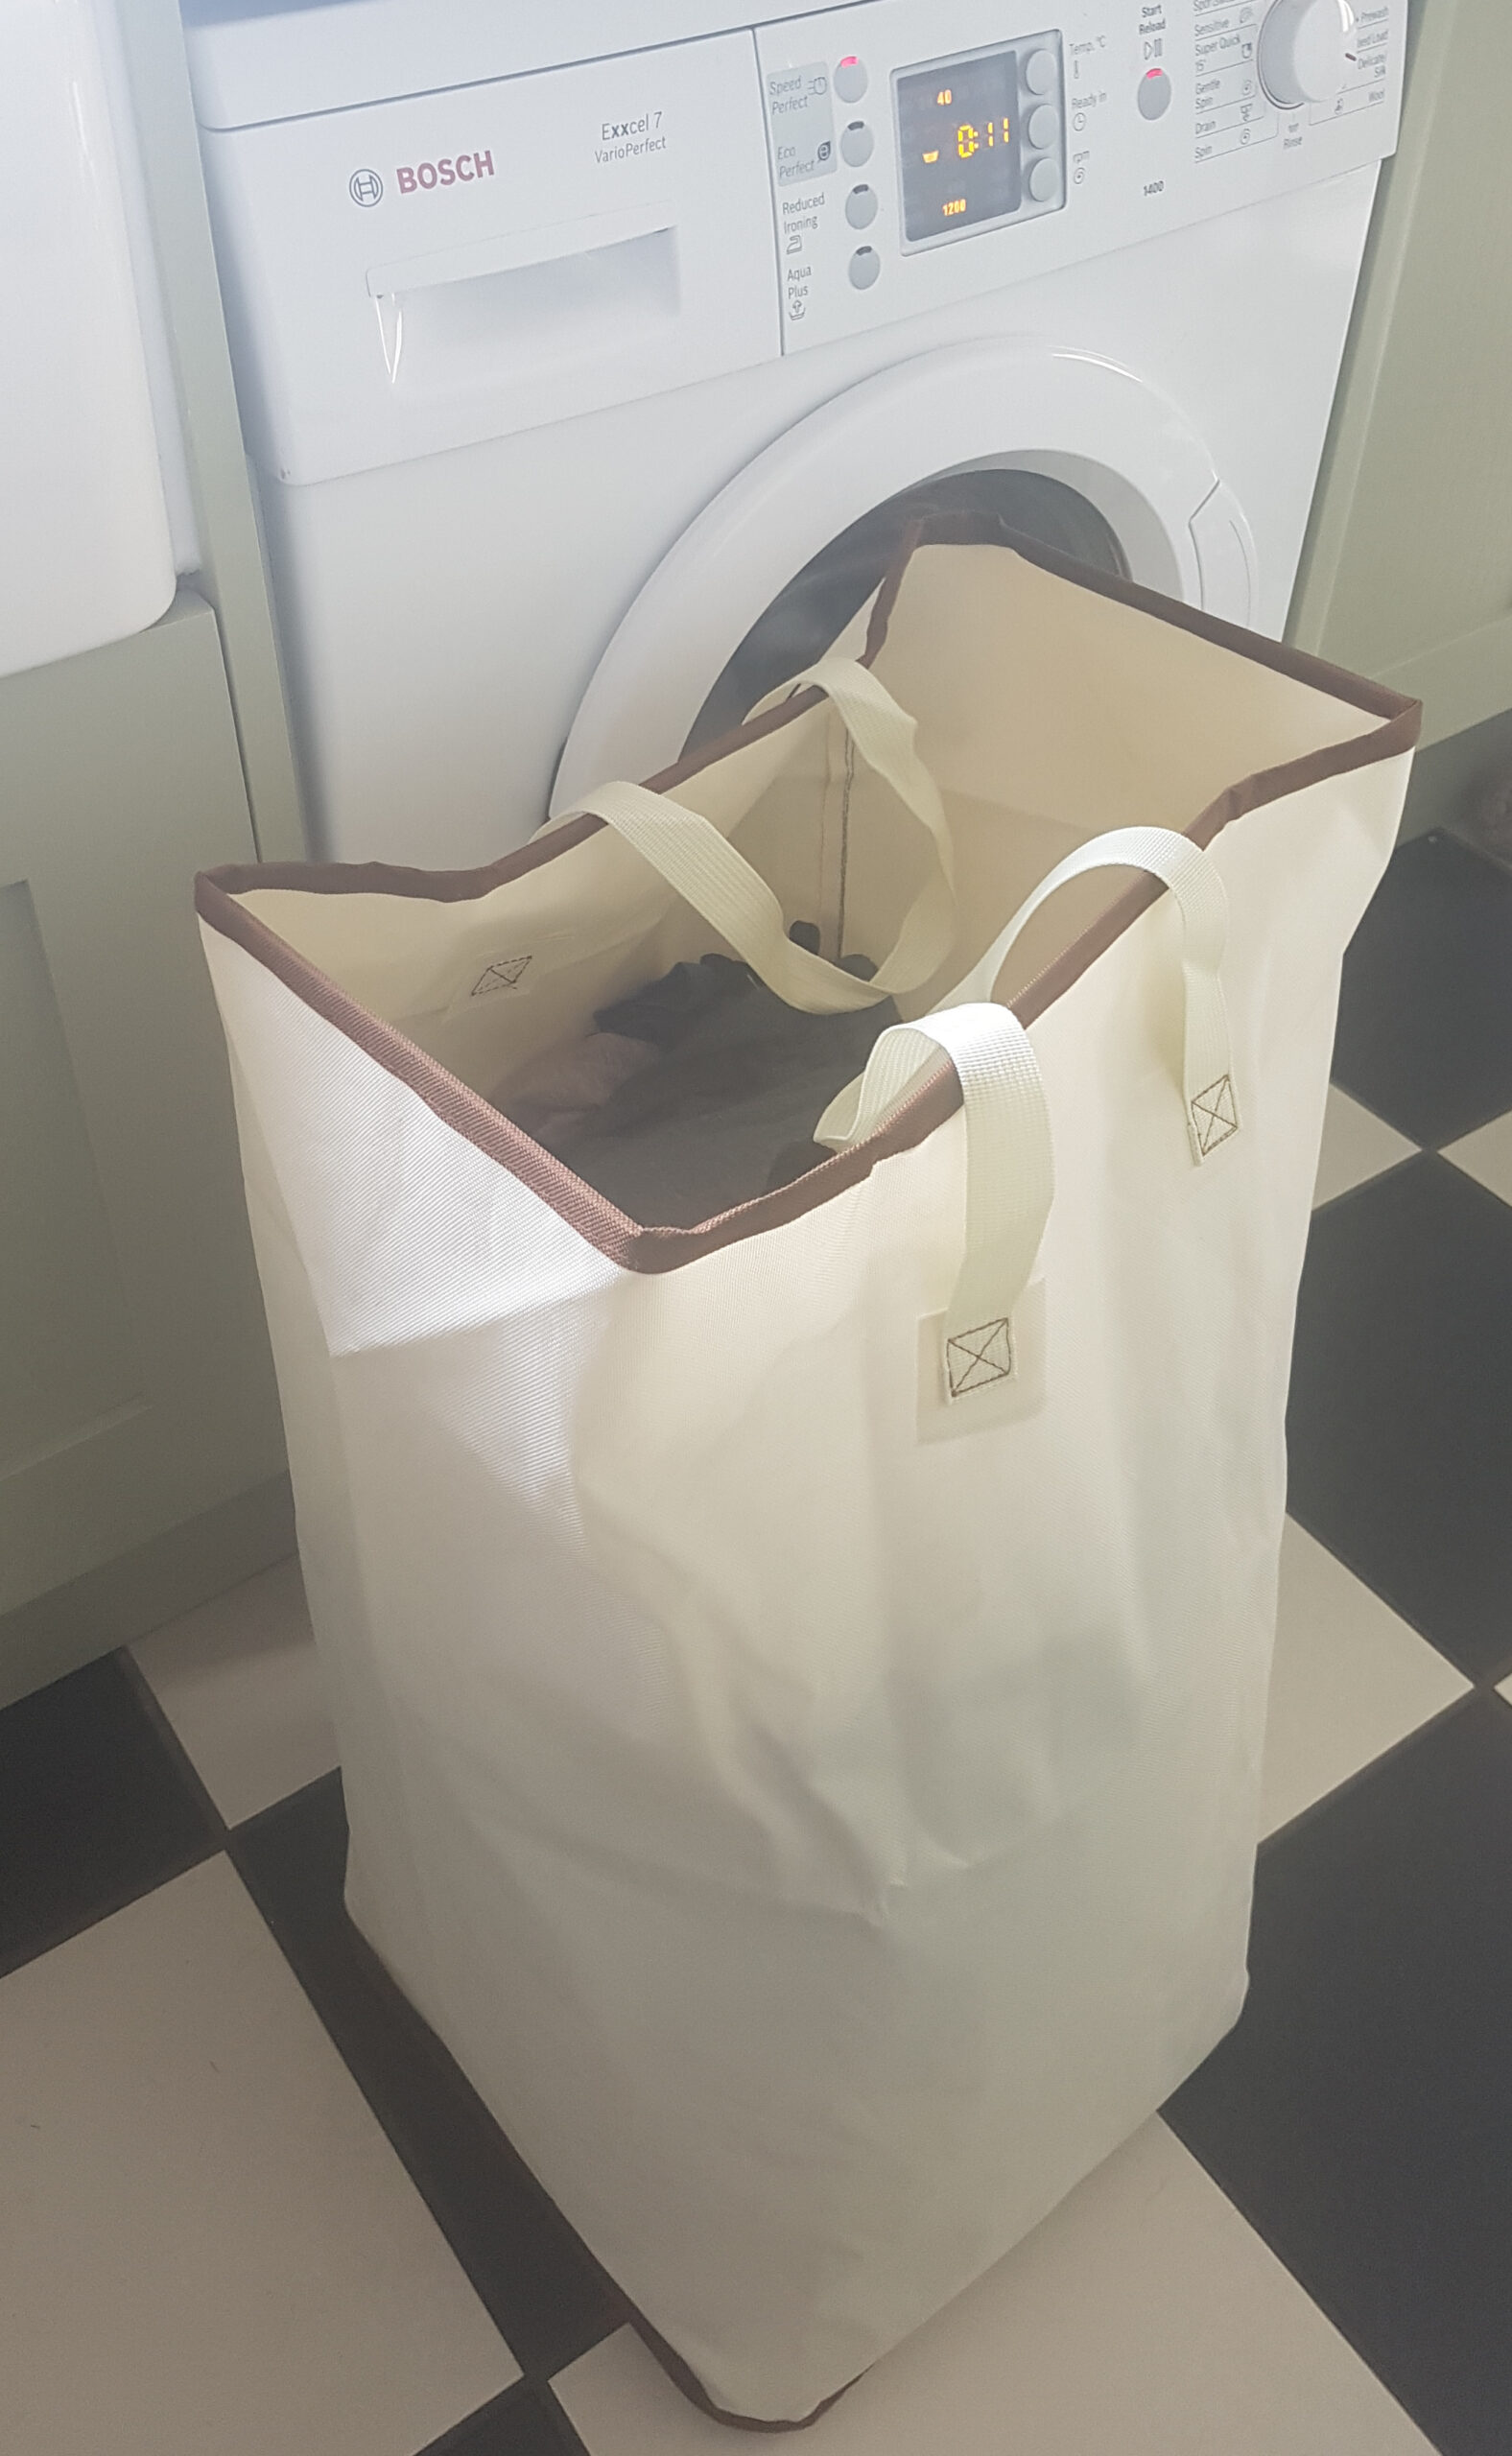 Large Laundry Bag With Strong Handles, Heavy Duty, 100 Litre Capacity, 65x40x40cm, Beige